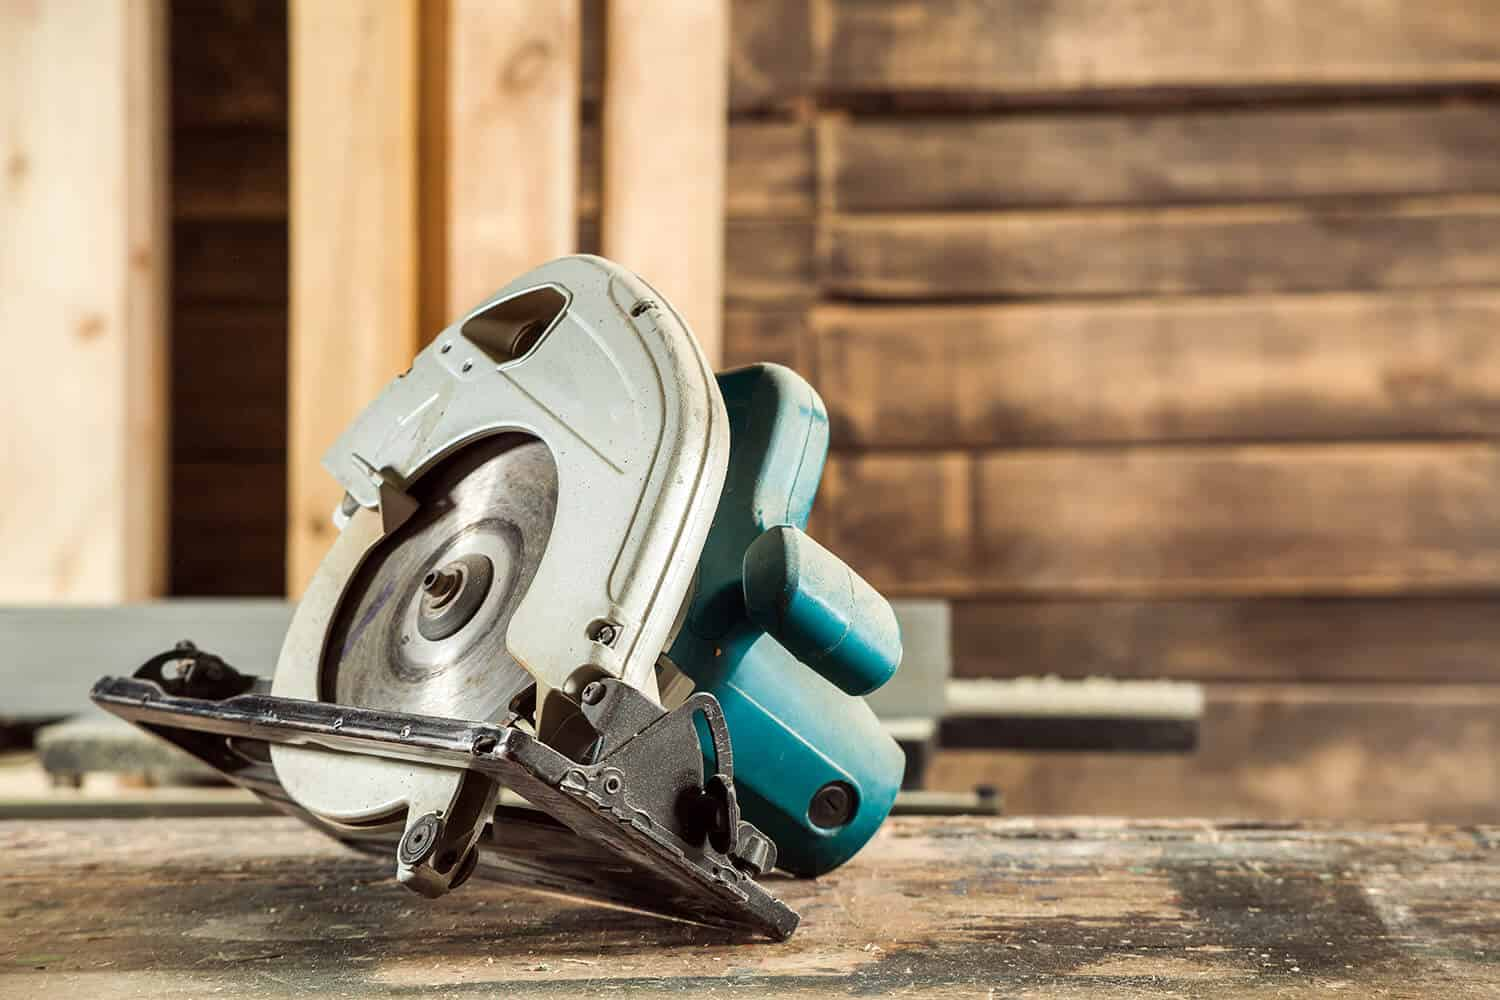 How to Cut Baseboard Corners with a Circular Saw